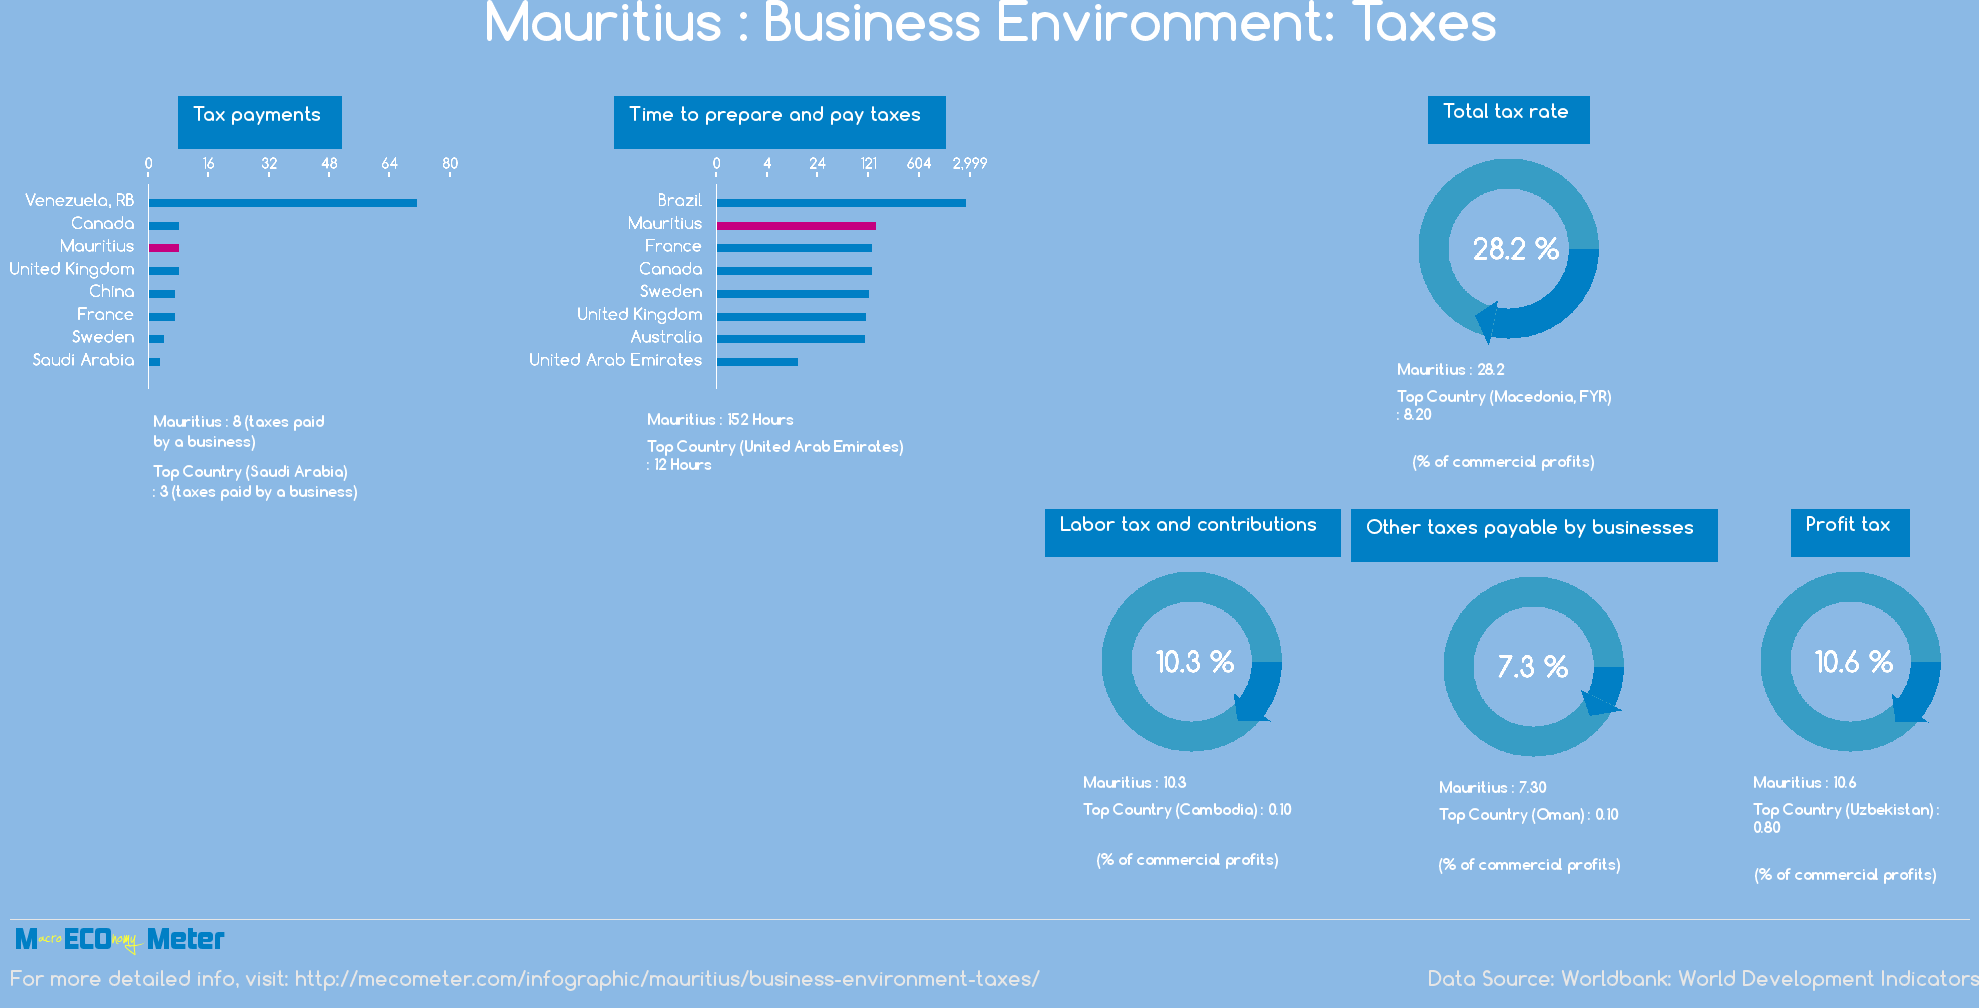 Mauritius : Business Environment: Taxes